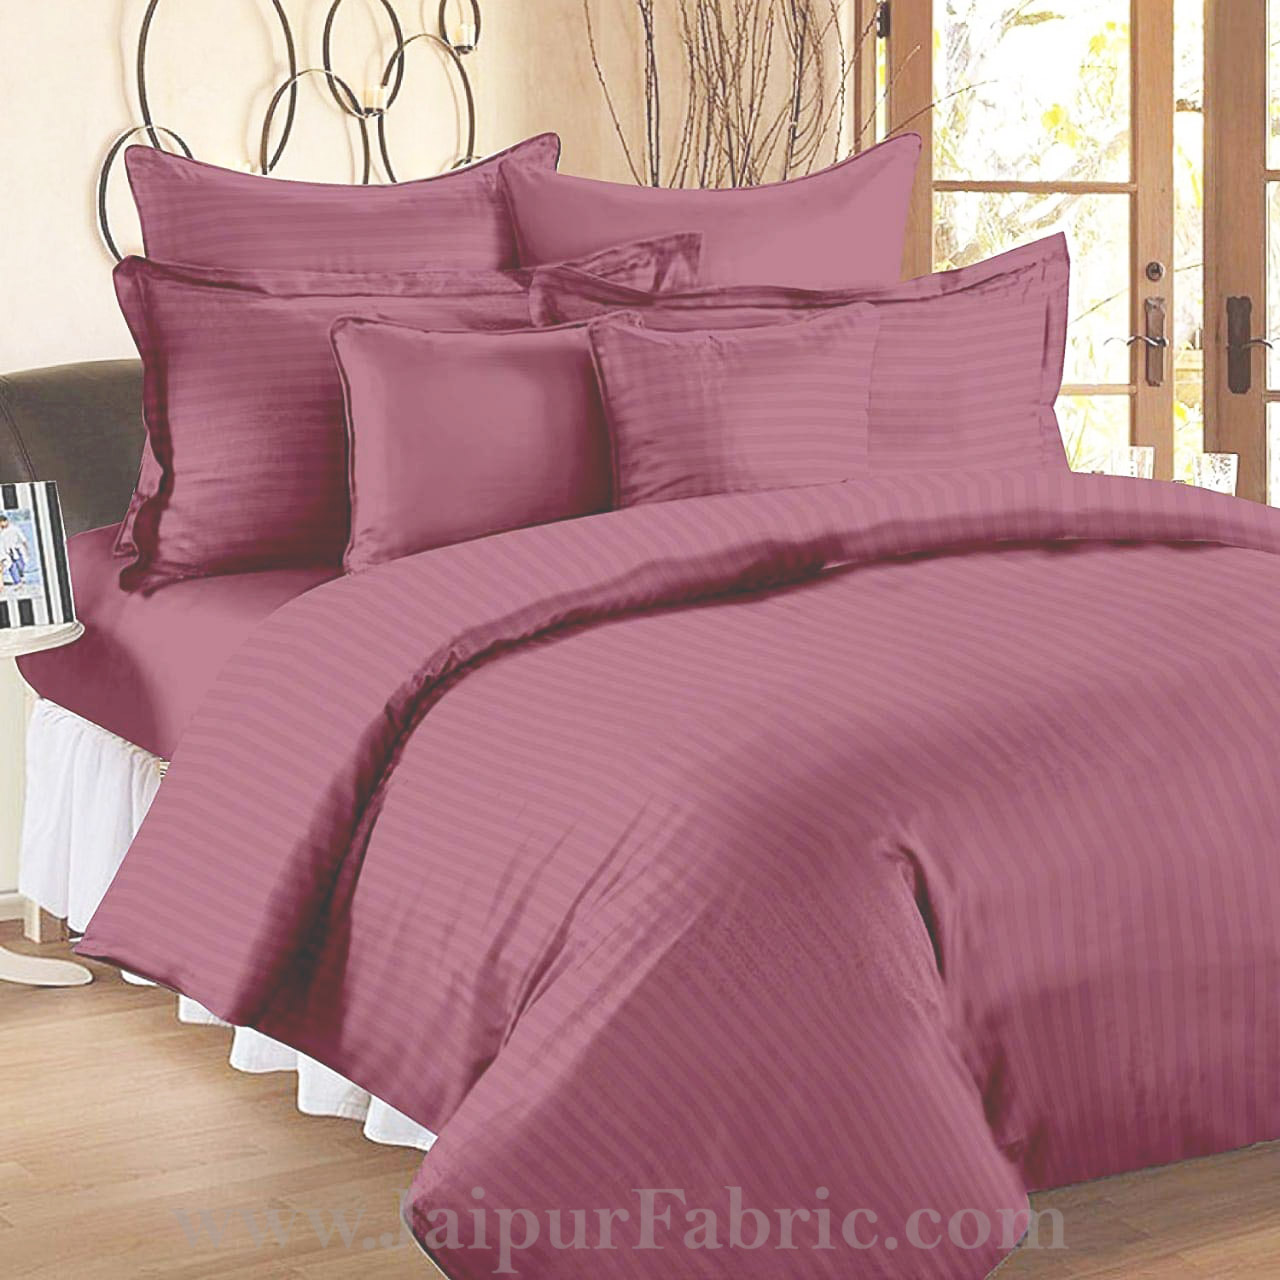 Thulian Pink Self Design 300 TC King Size Pure Cotton Satin Slumber Sheet for Double Bed with 2 pillow covers